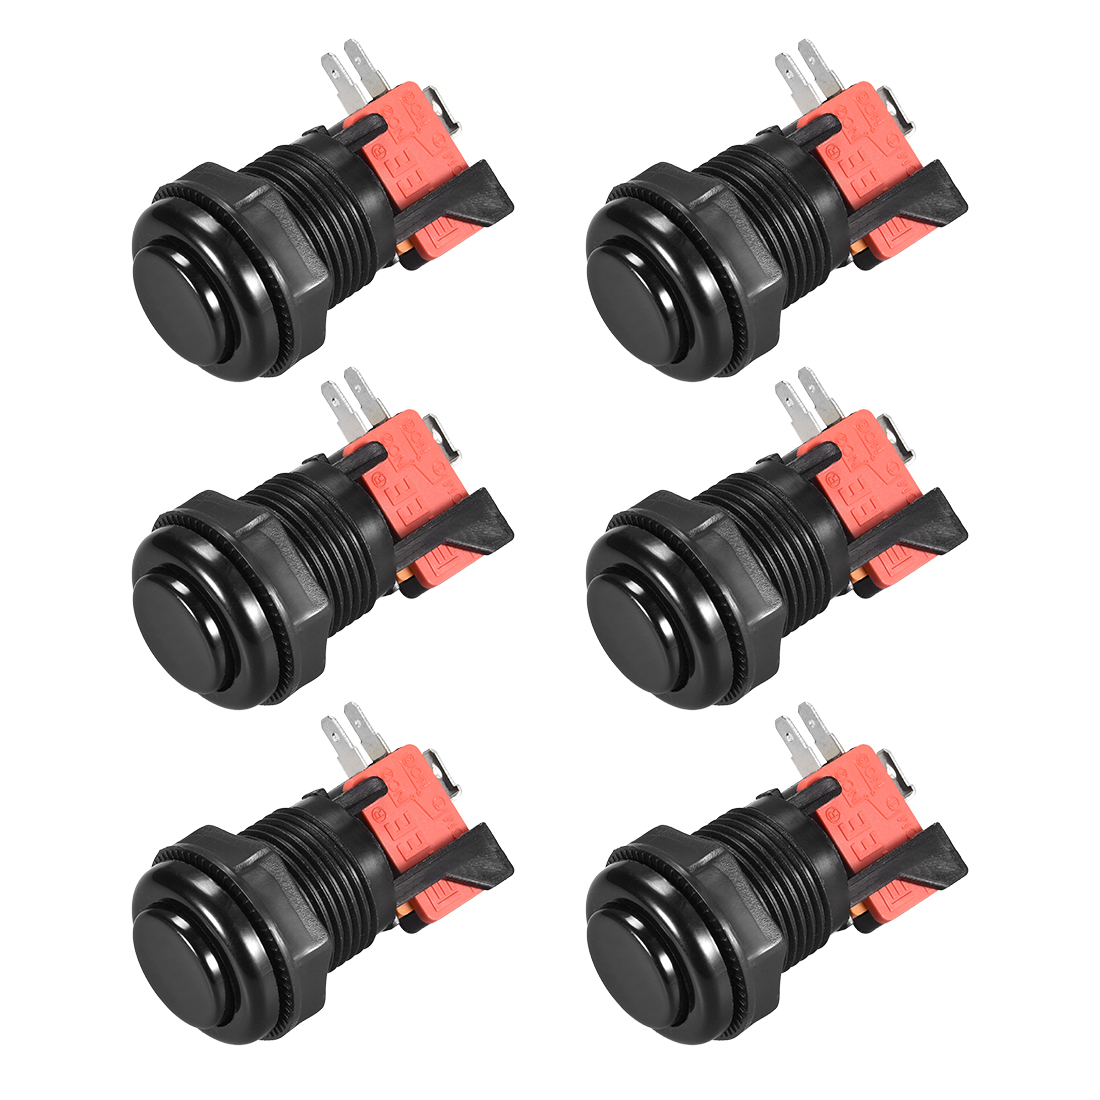 27mm Mounting Momentary Game Push Button Switch with Micro switch Black 6pcs